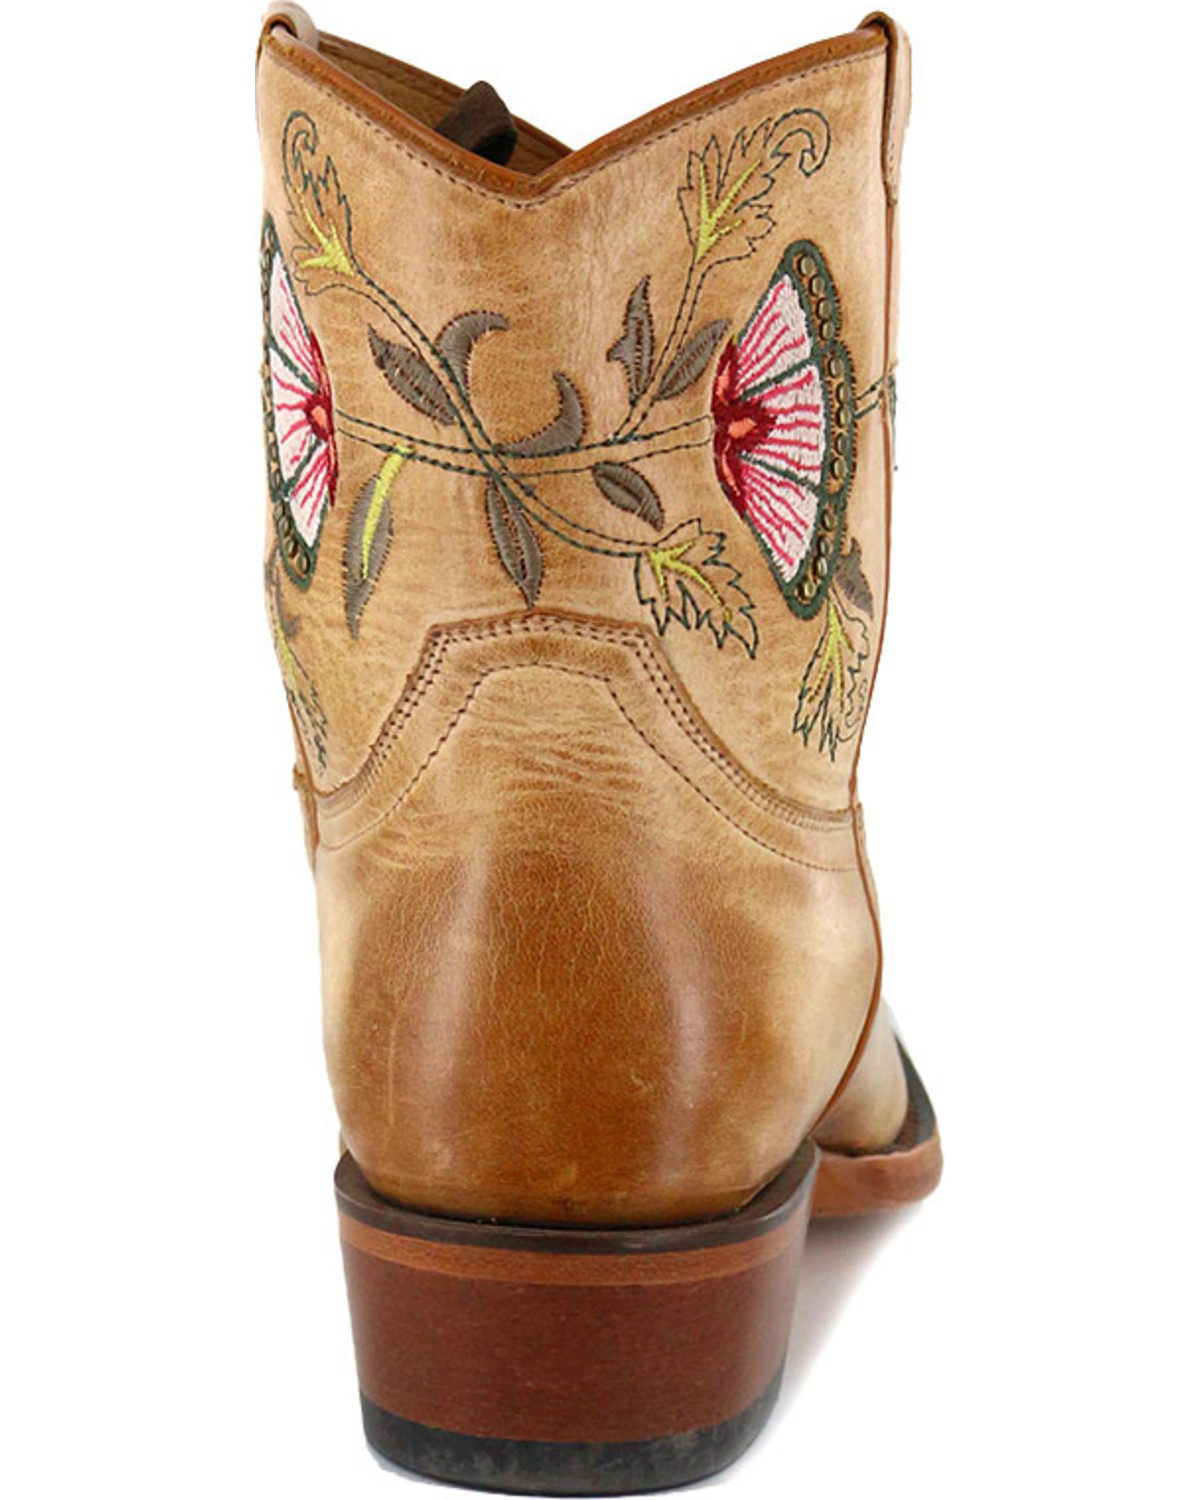 Stetson Women's April Pink Floral Embroidered Western Boots - Snip Toe,  Pink, hi-